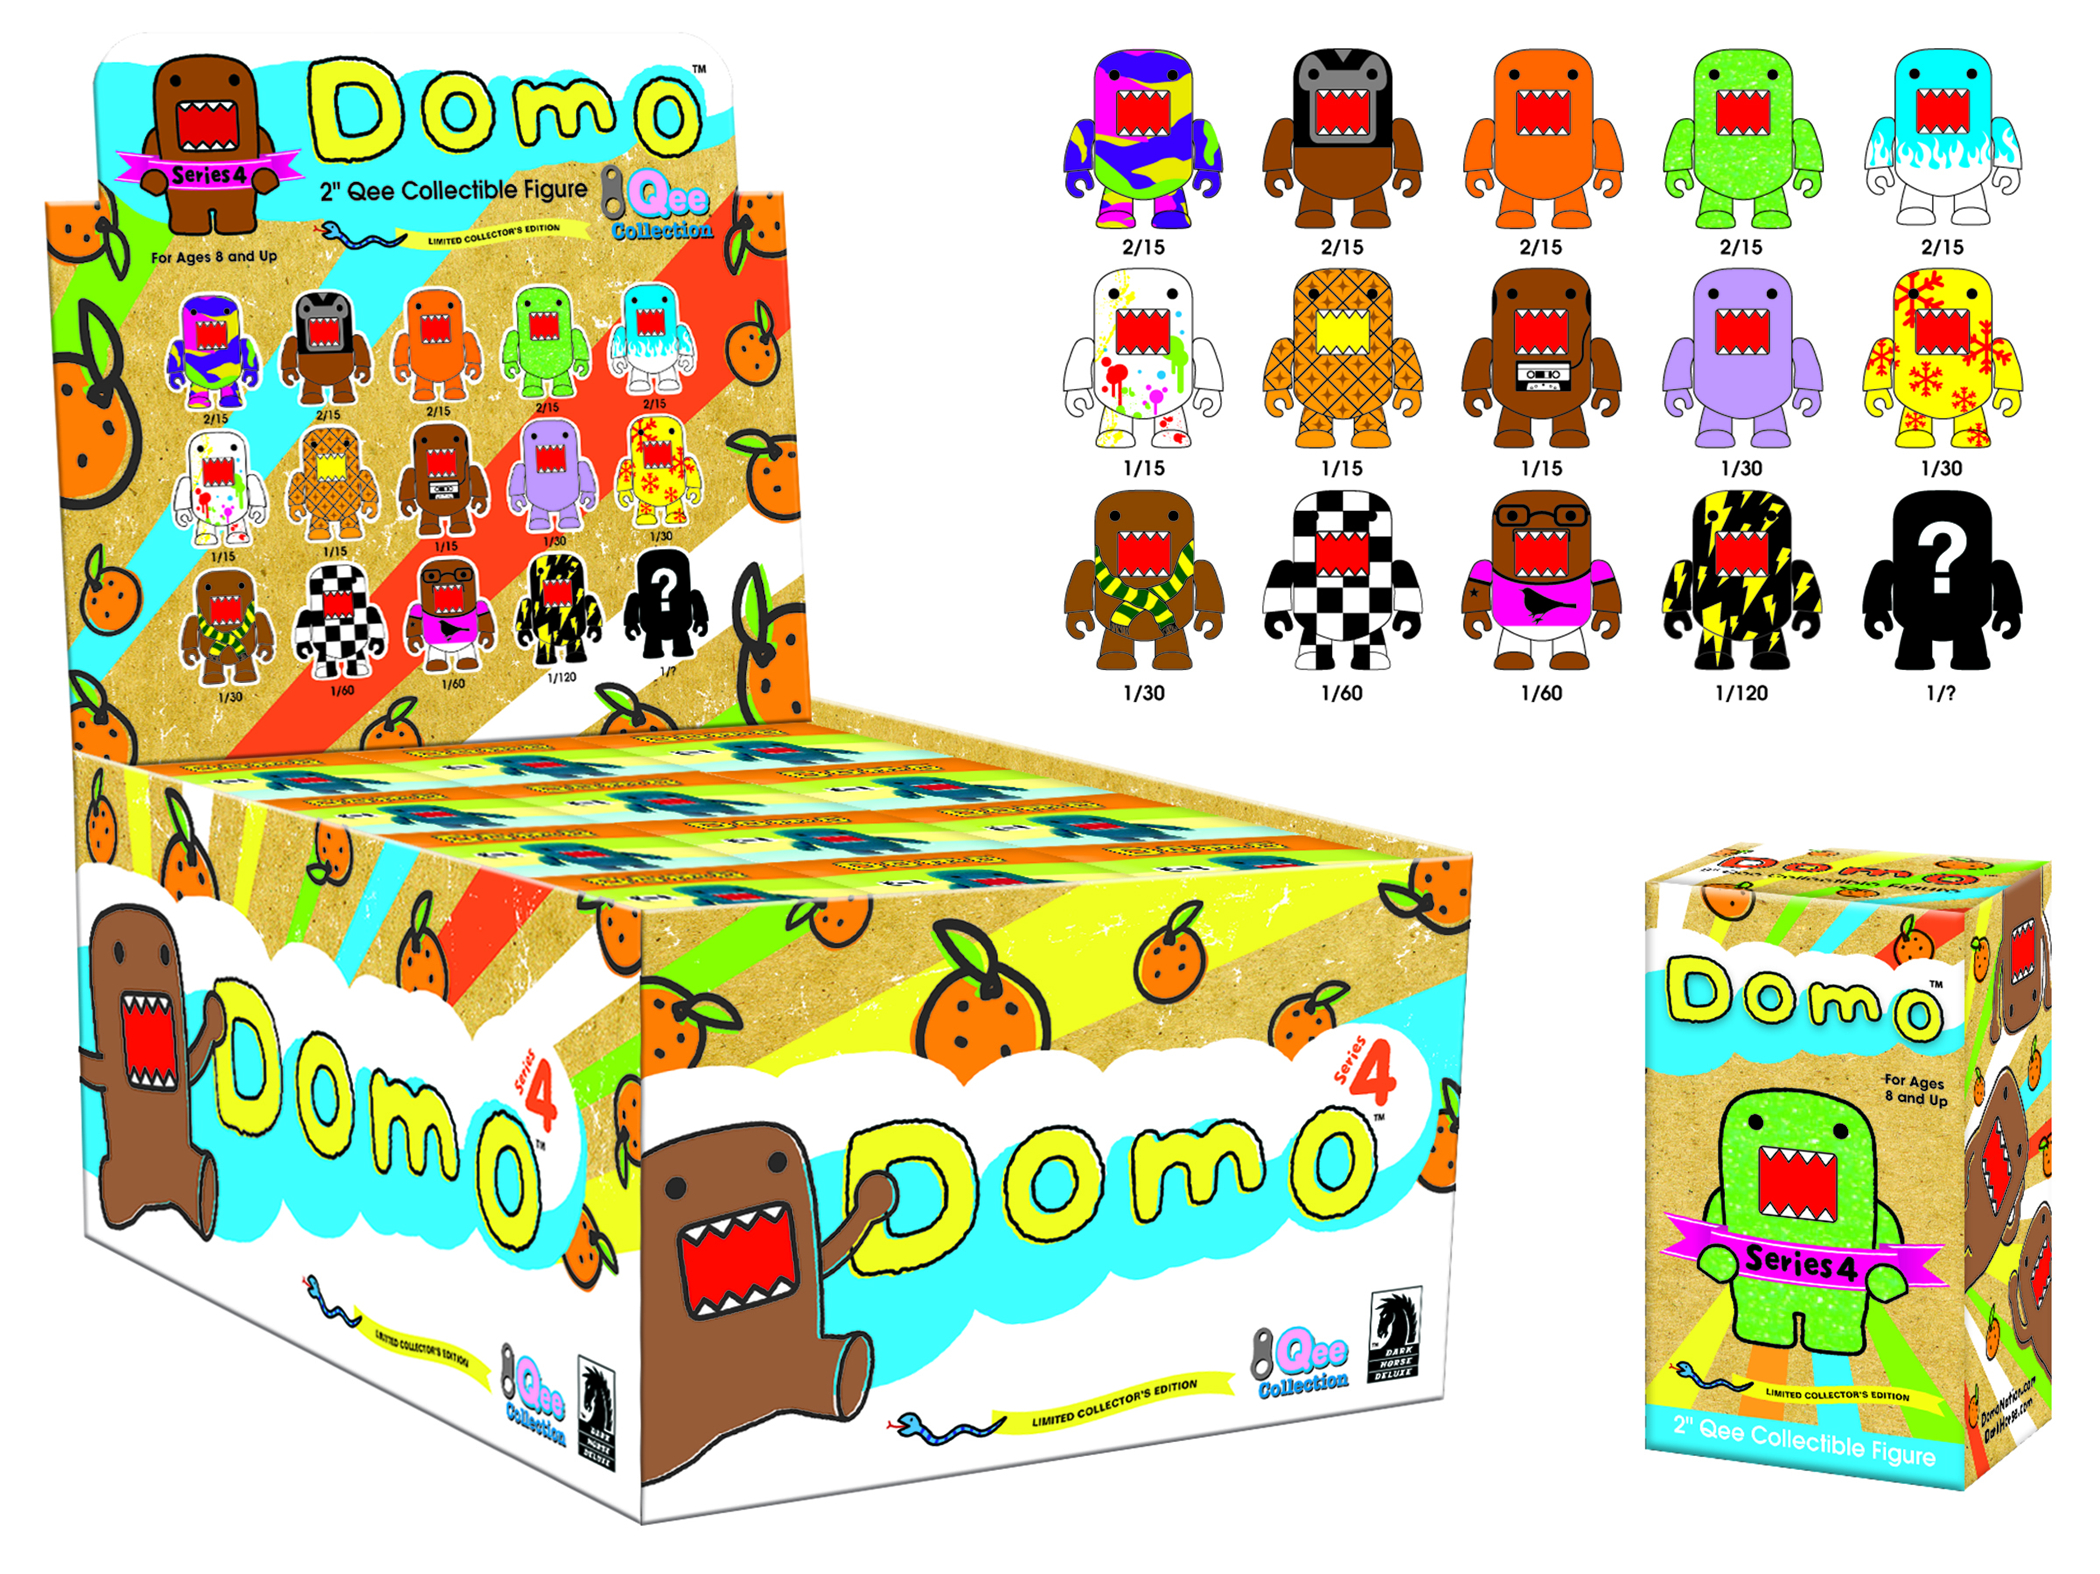 DOMO QEE SERIES 4 MYSTERY DISPLAY CASE